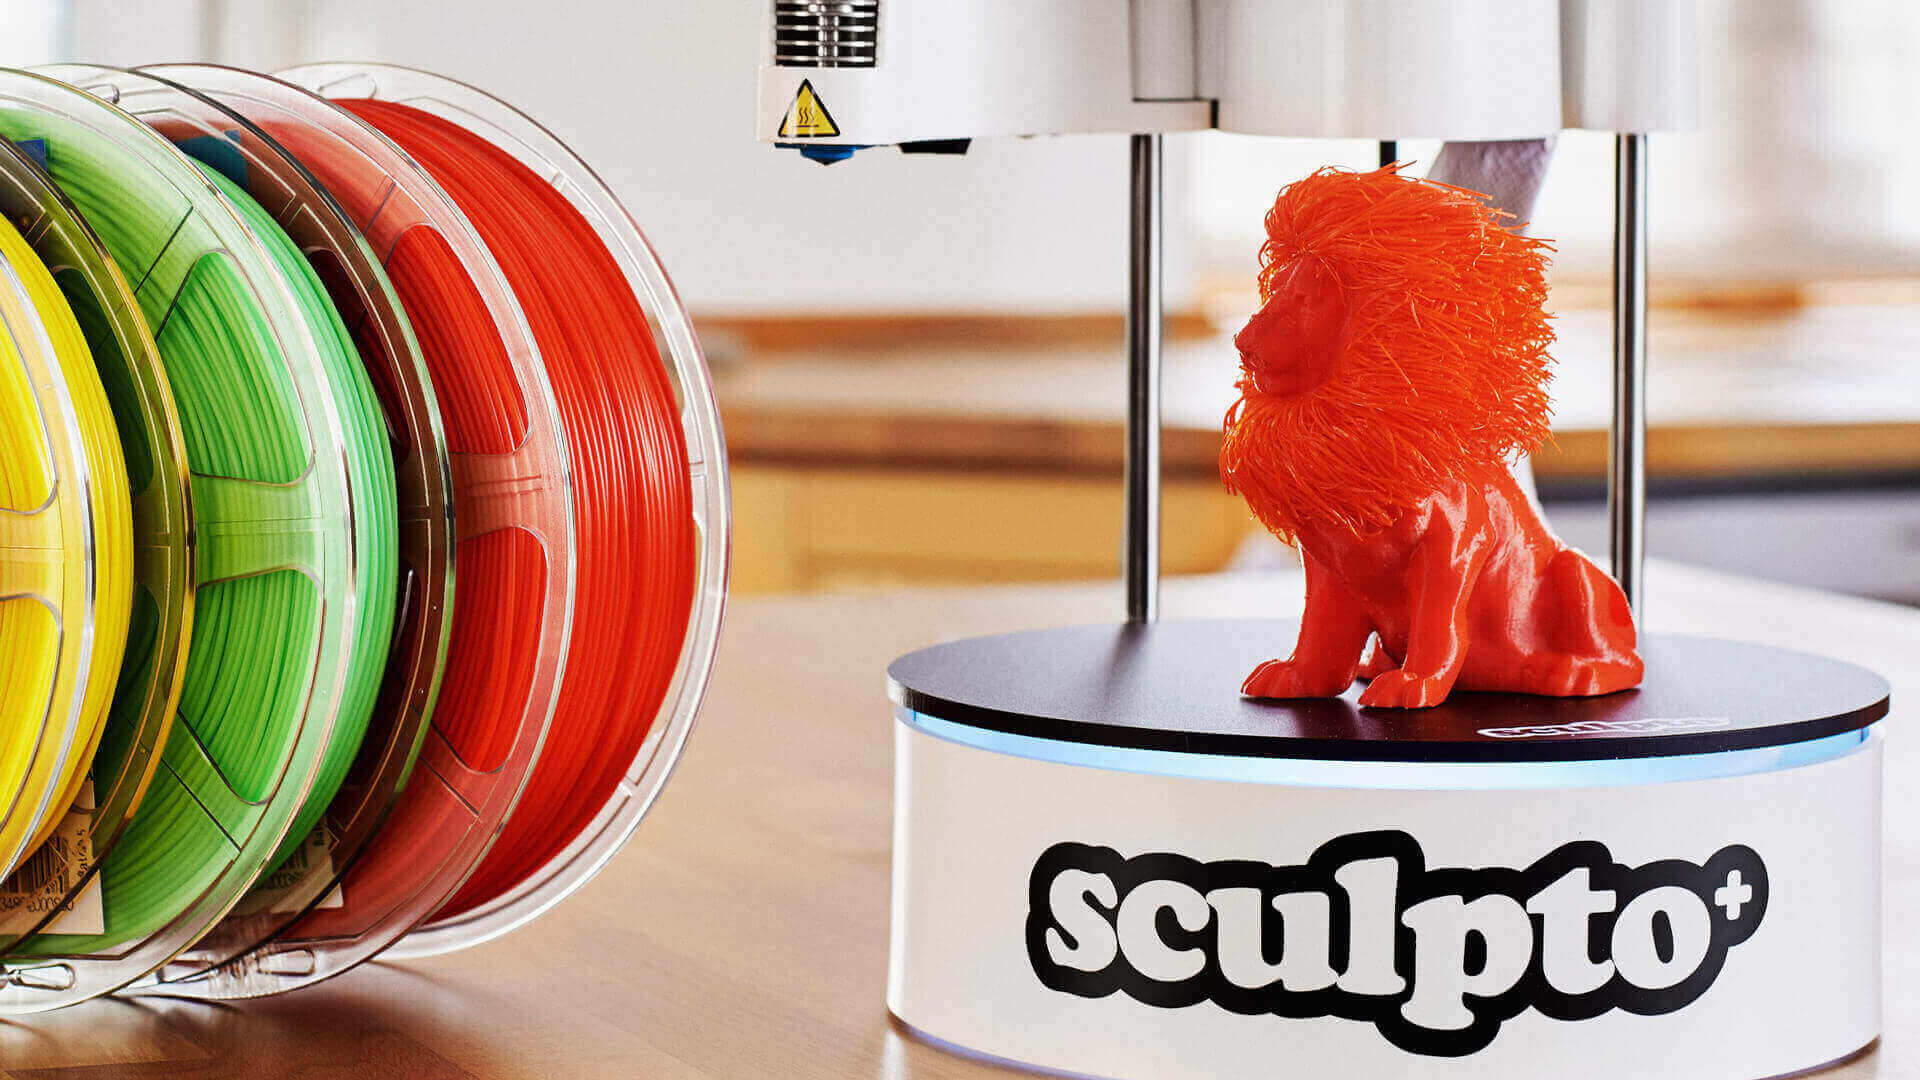 Sculpto Plus is a New, Improved Polar 3D Printer from Denmark | All3DP